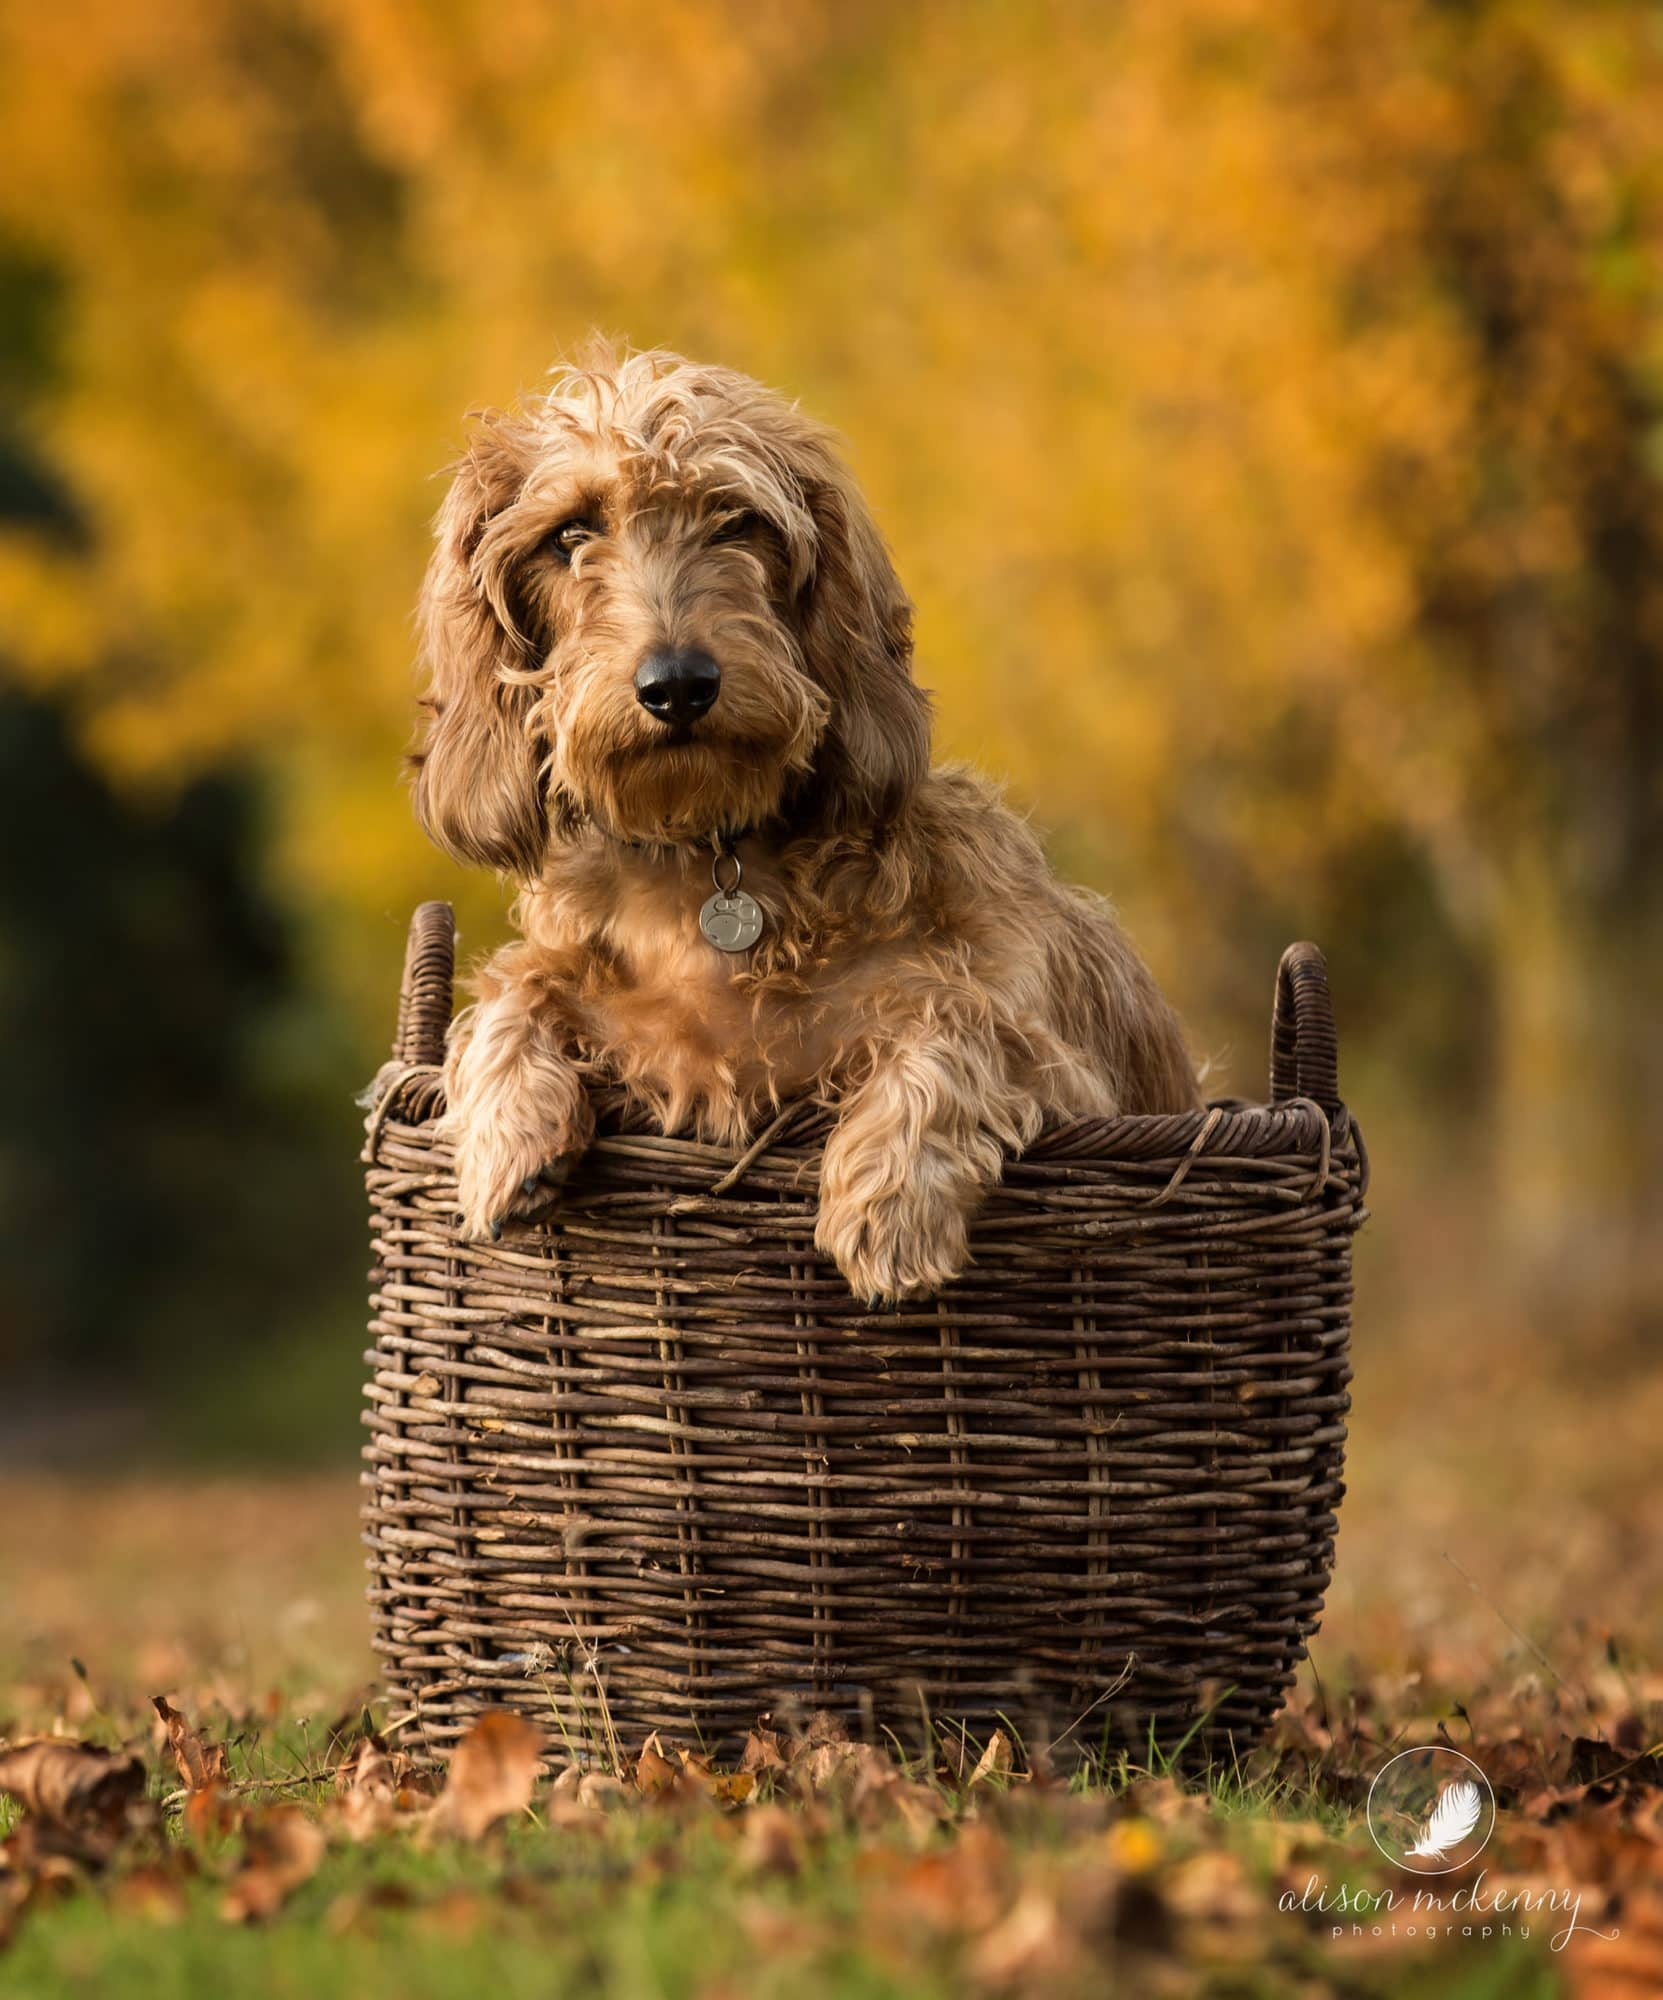 Dachshund sitting in a basket for a Pet Photoshoot in an Autumnal setting on Suffolk Farm